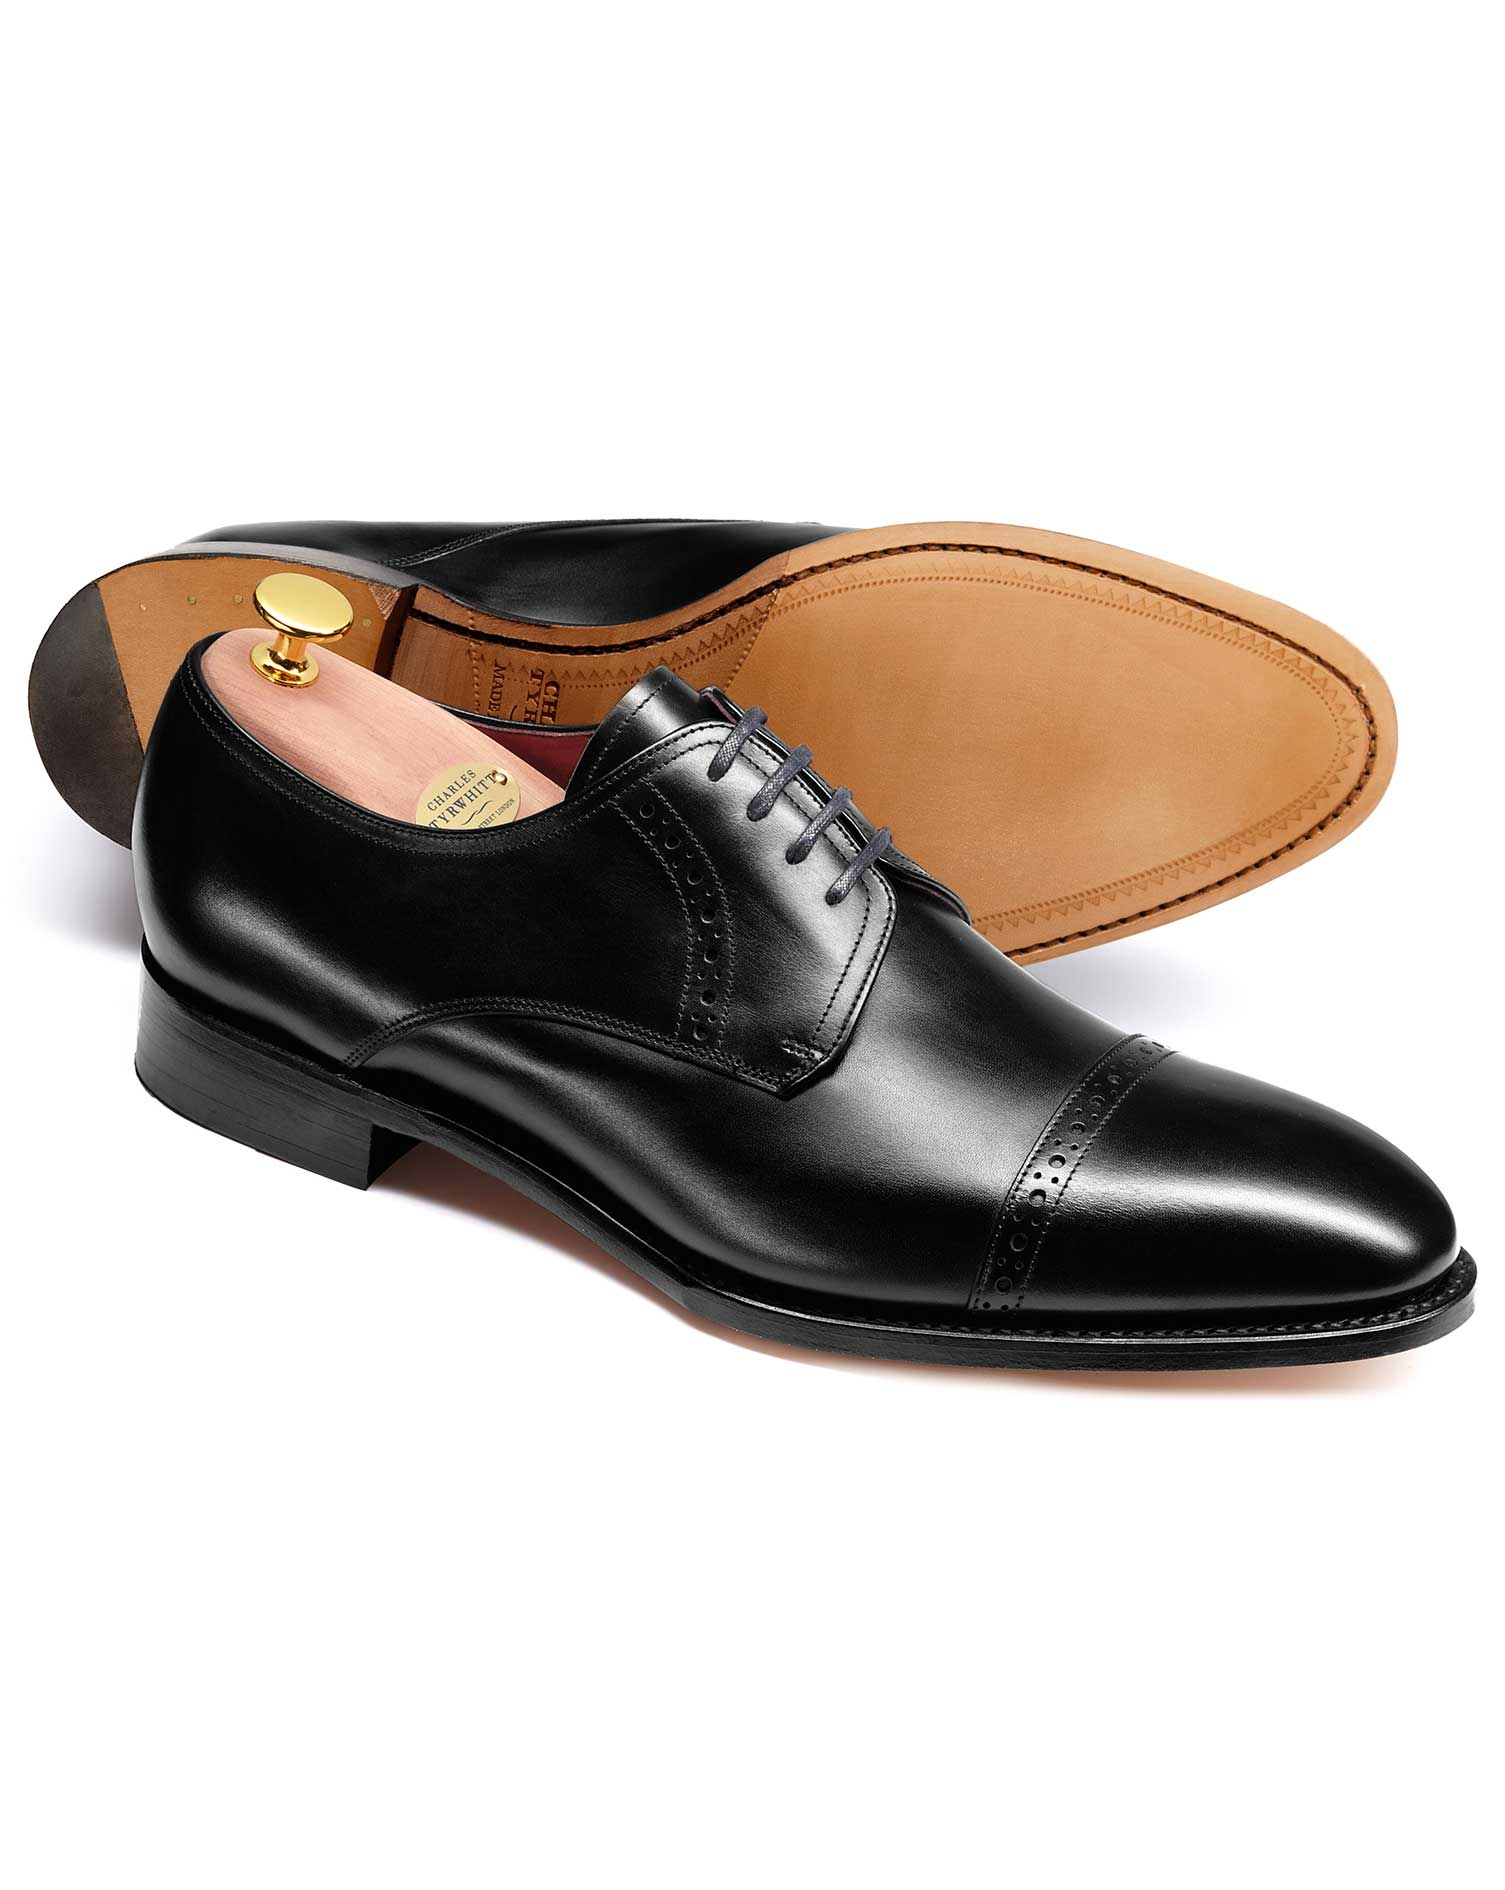 Black Calf Leather Toe Cap Derby Shoe Size 6.5 W by Charles Tyrwhitt